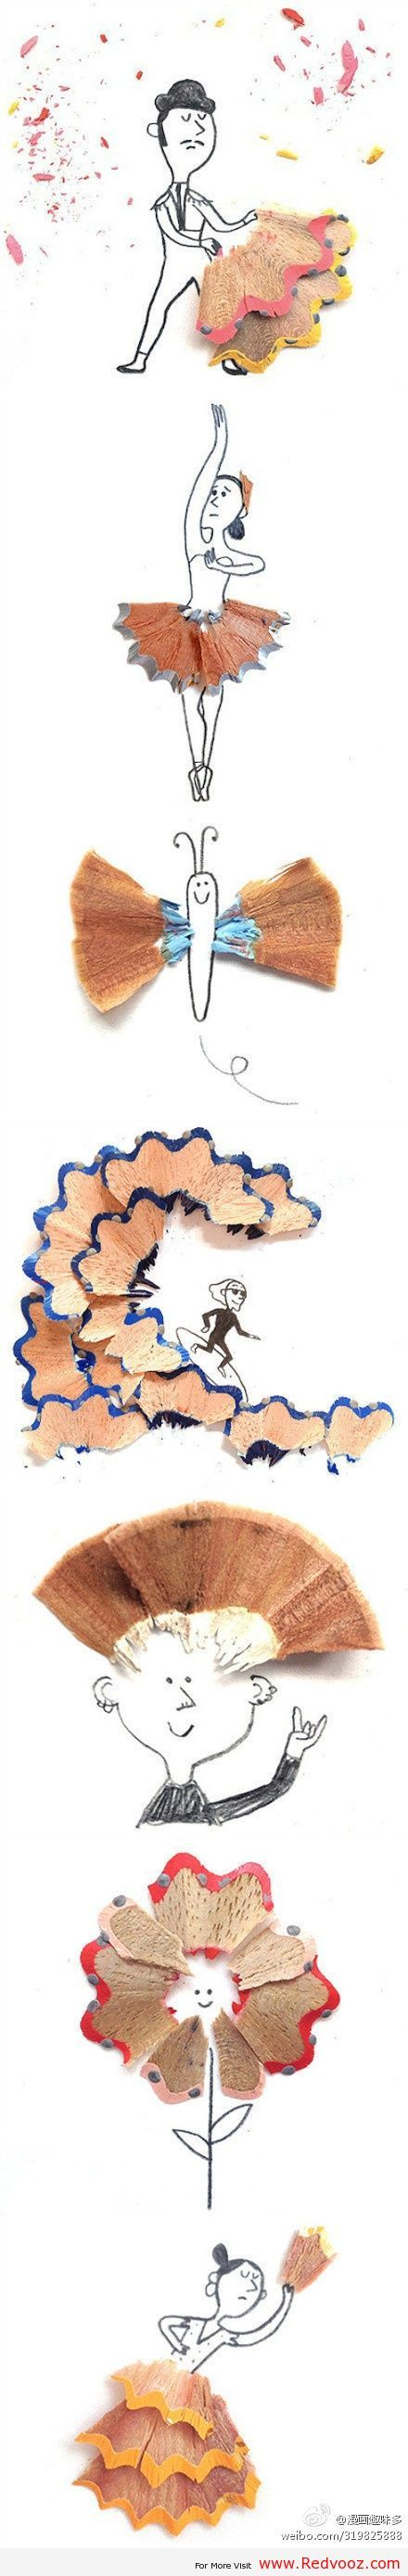 Pencil Shaving Art: Creative drawings by London based children's book author & illustrator Marta Altes..